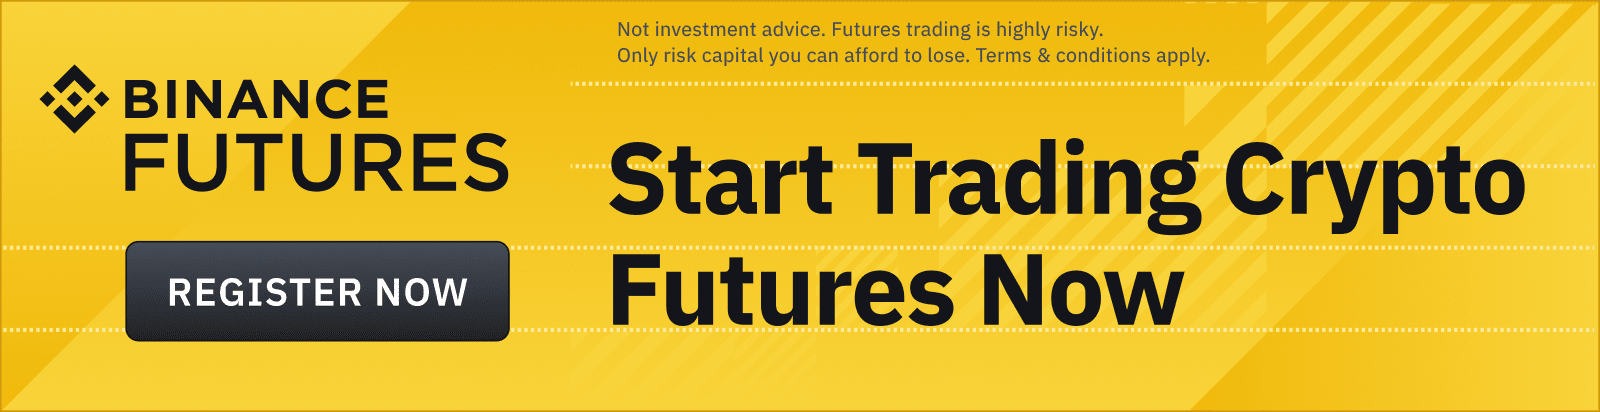 Making Sense of Crypto Futures Order Types - What are they and when to use them?Cryptocurrency Trading Signals, Strategies & Templates | DexStrats